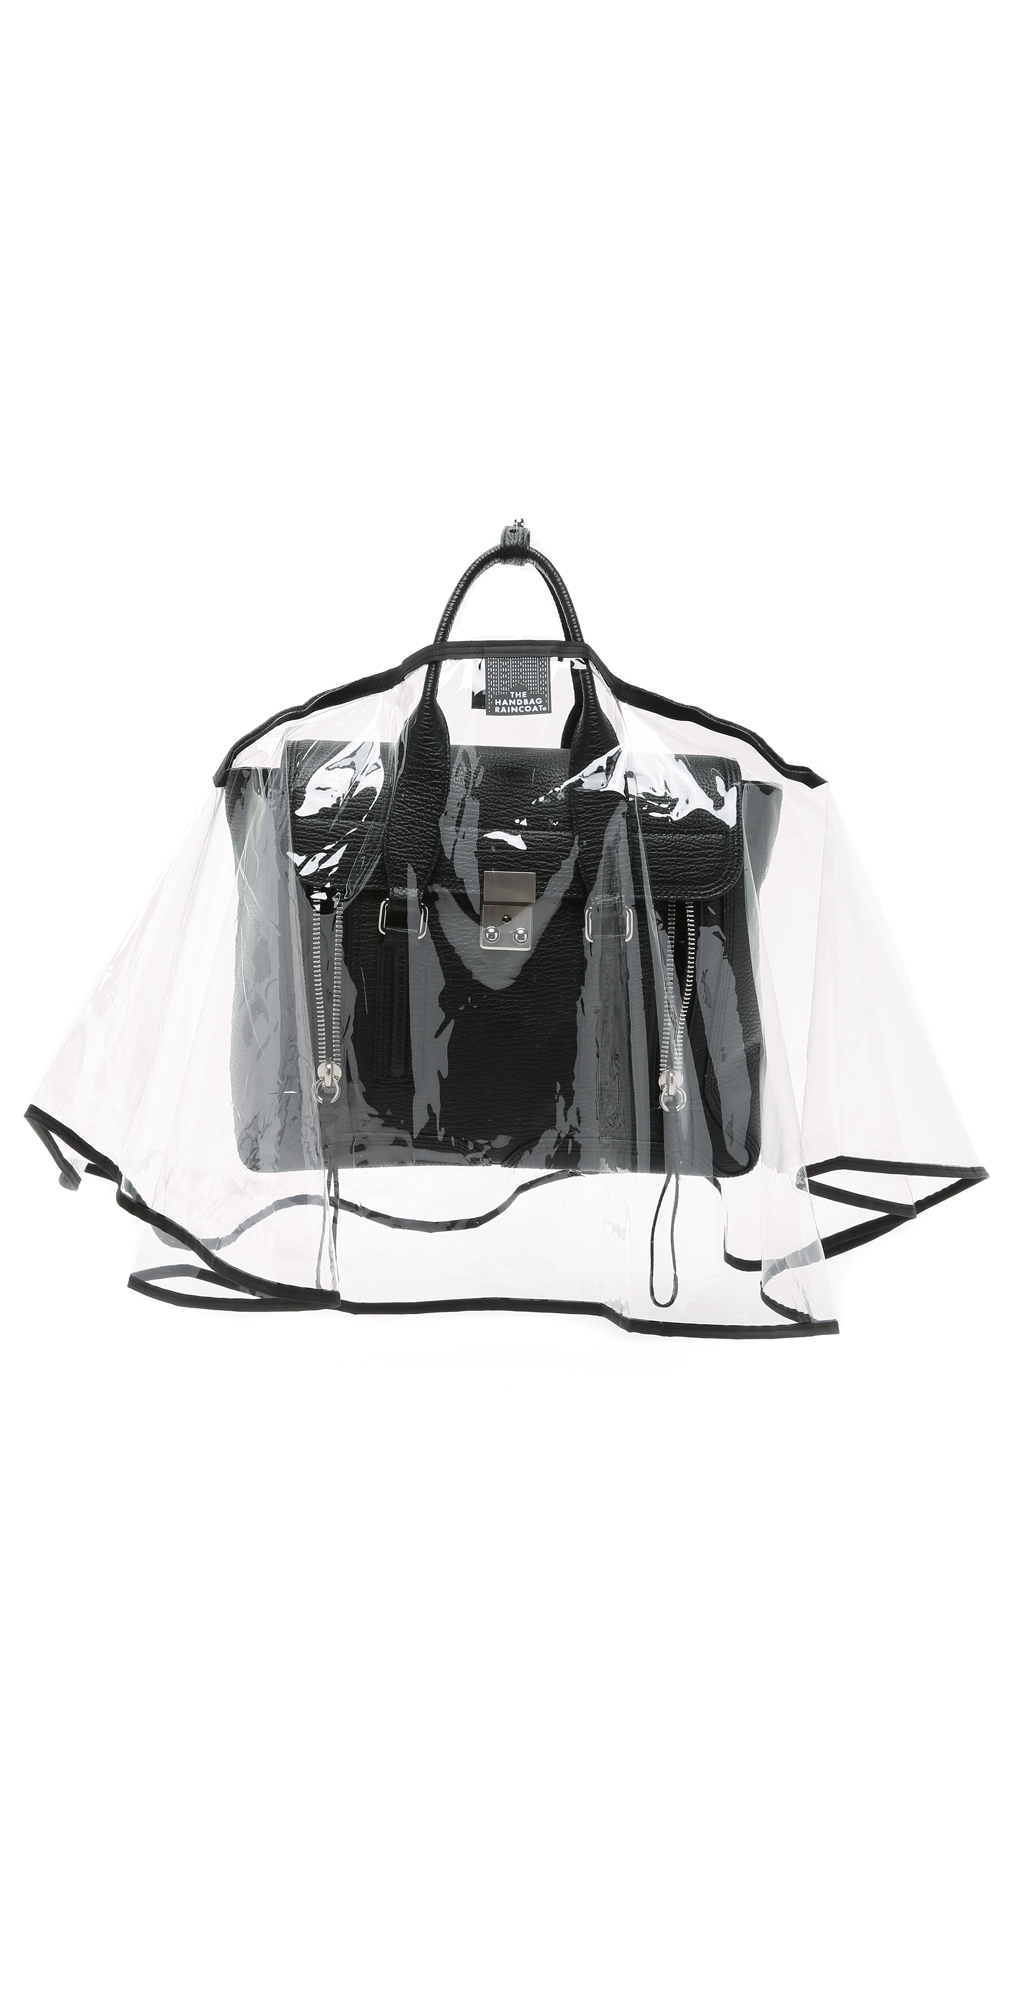 Large City Slicker Handbag Raincoat The Handbag Raincoat